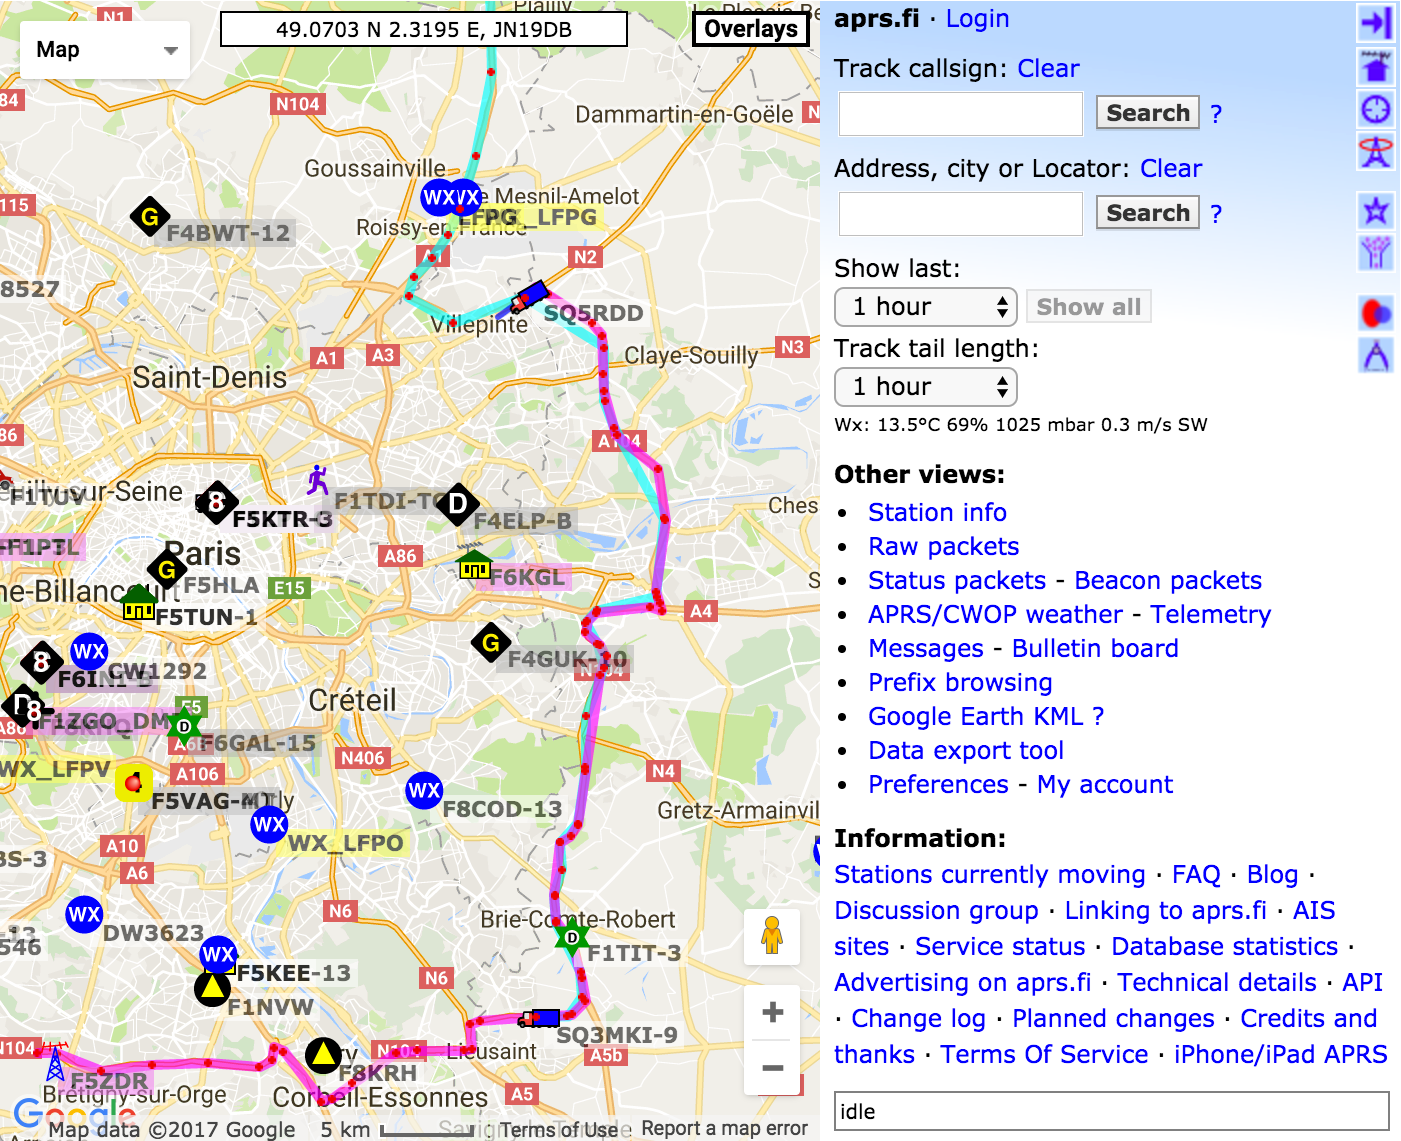 Aprs.fi Real-time map on